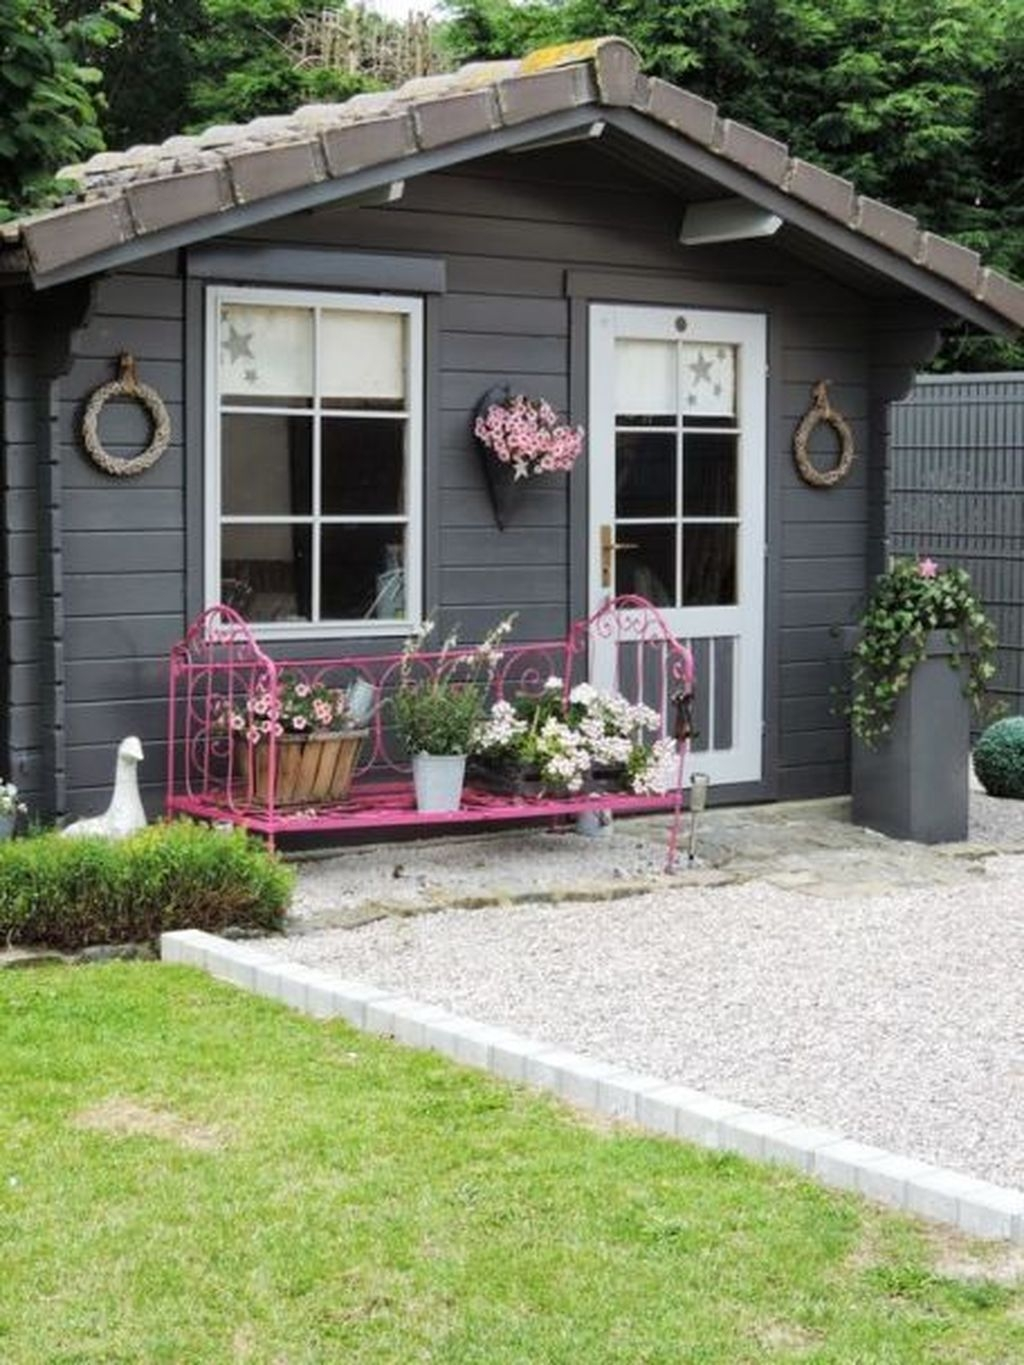 Incredible Studio Shed Designs Ideas For Your Backyard25